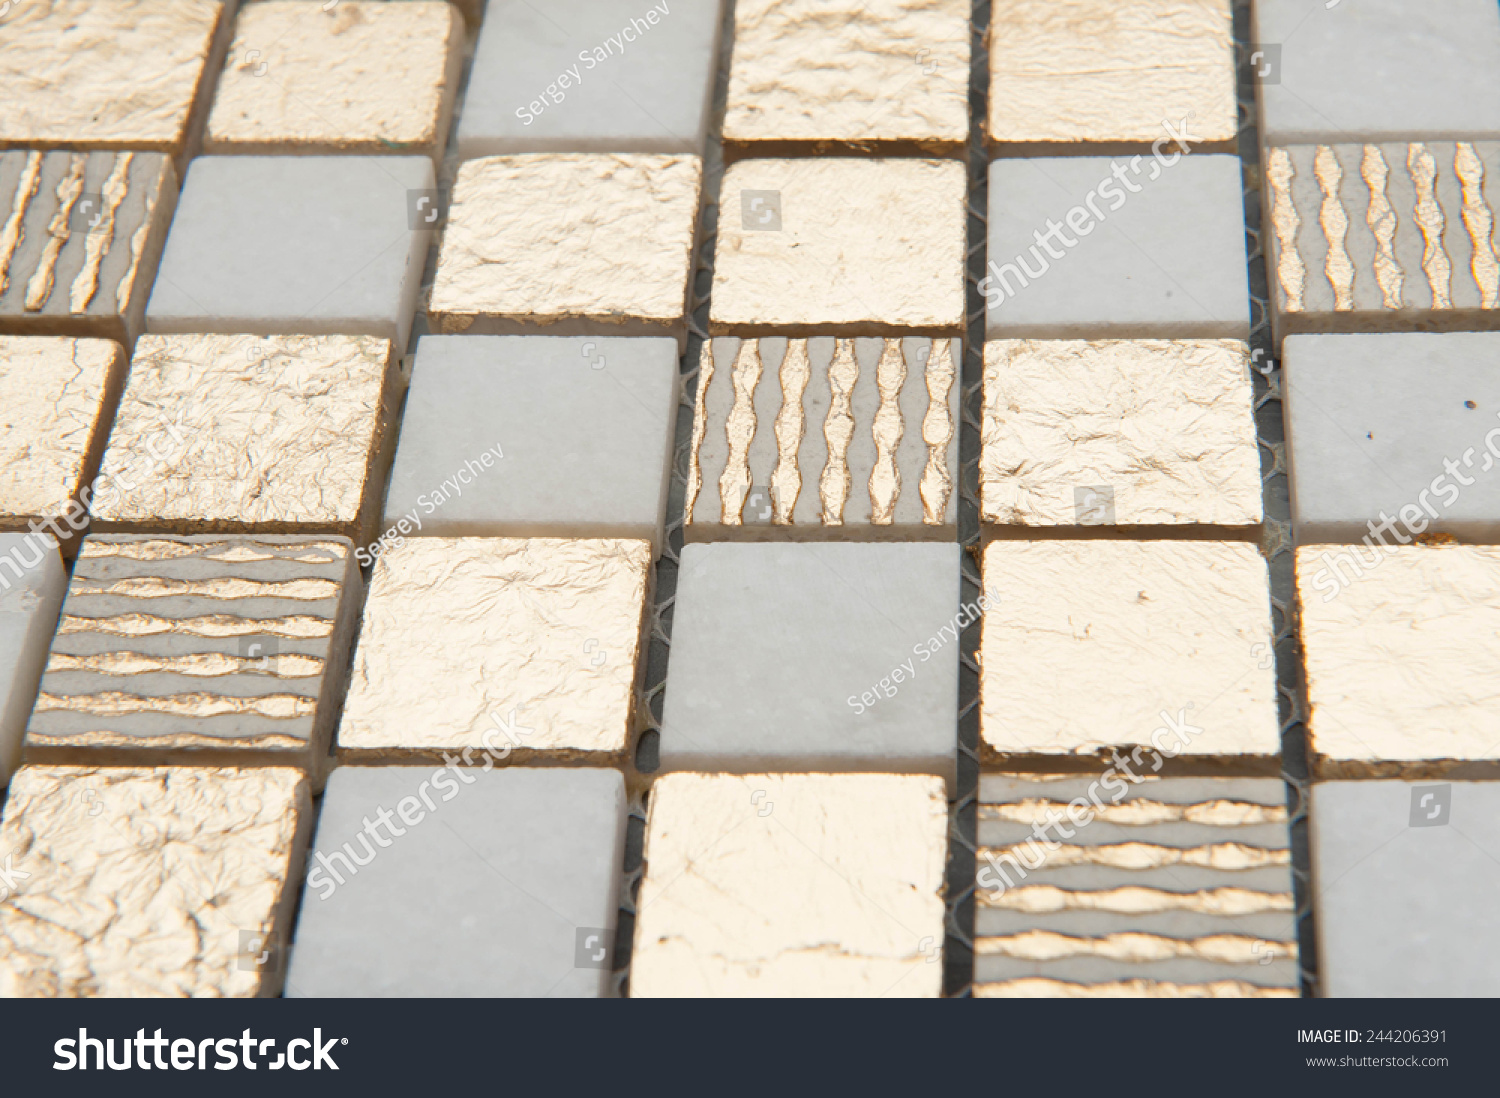 Texture Mosaic Tiles Texture Mosaic Bathroom Stock Photo (Edit Now ...